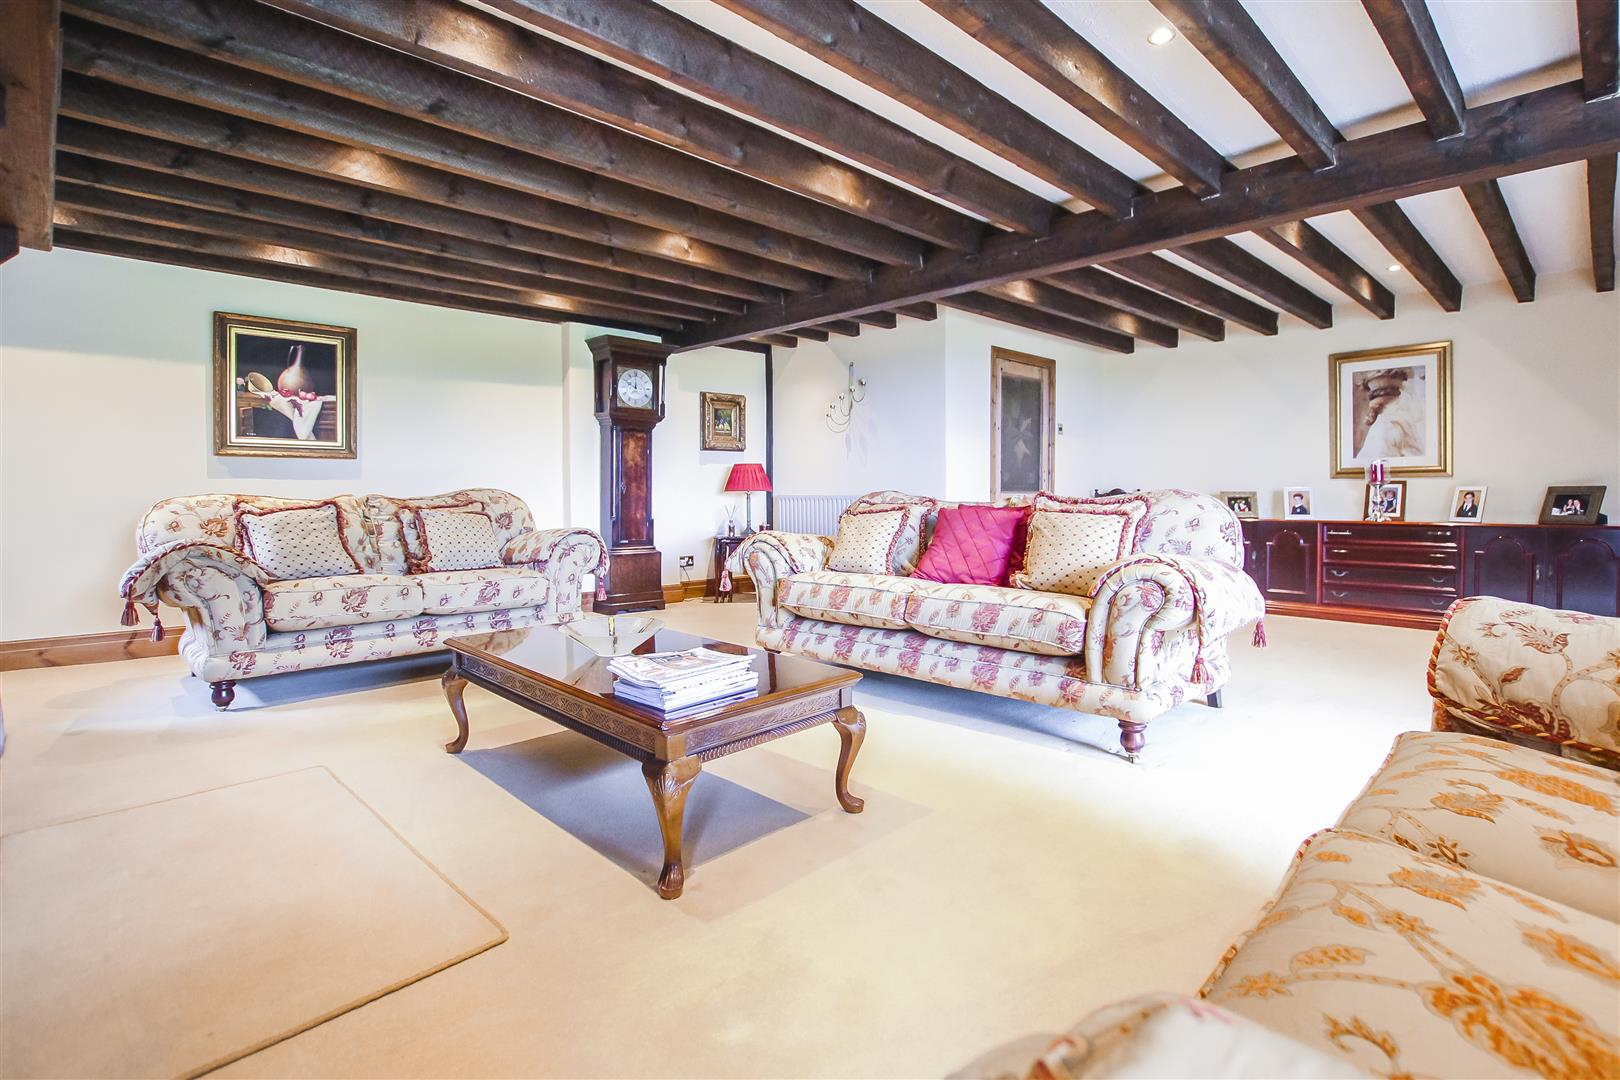 5 Bedroom Barn Conversion For Sale - Image 22